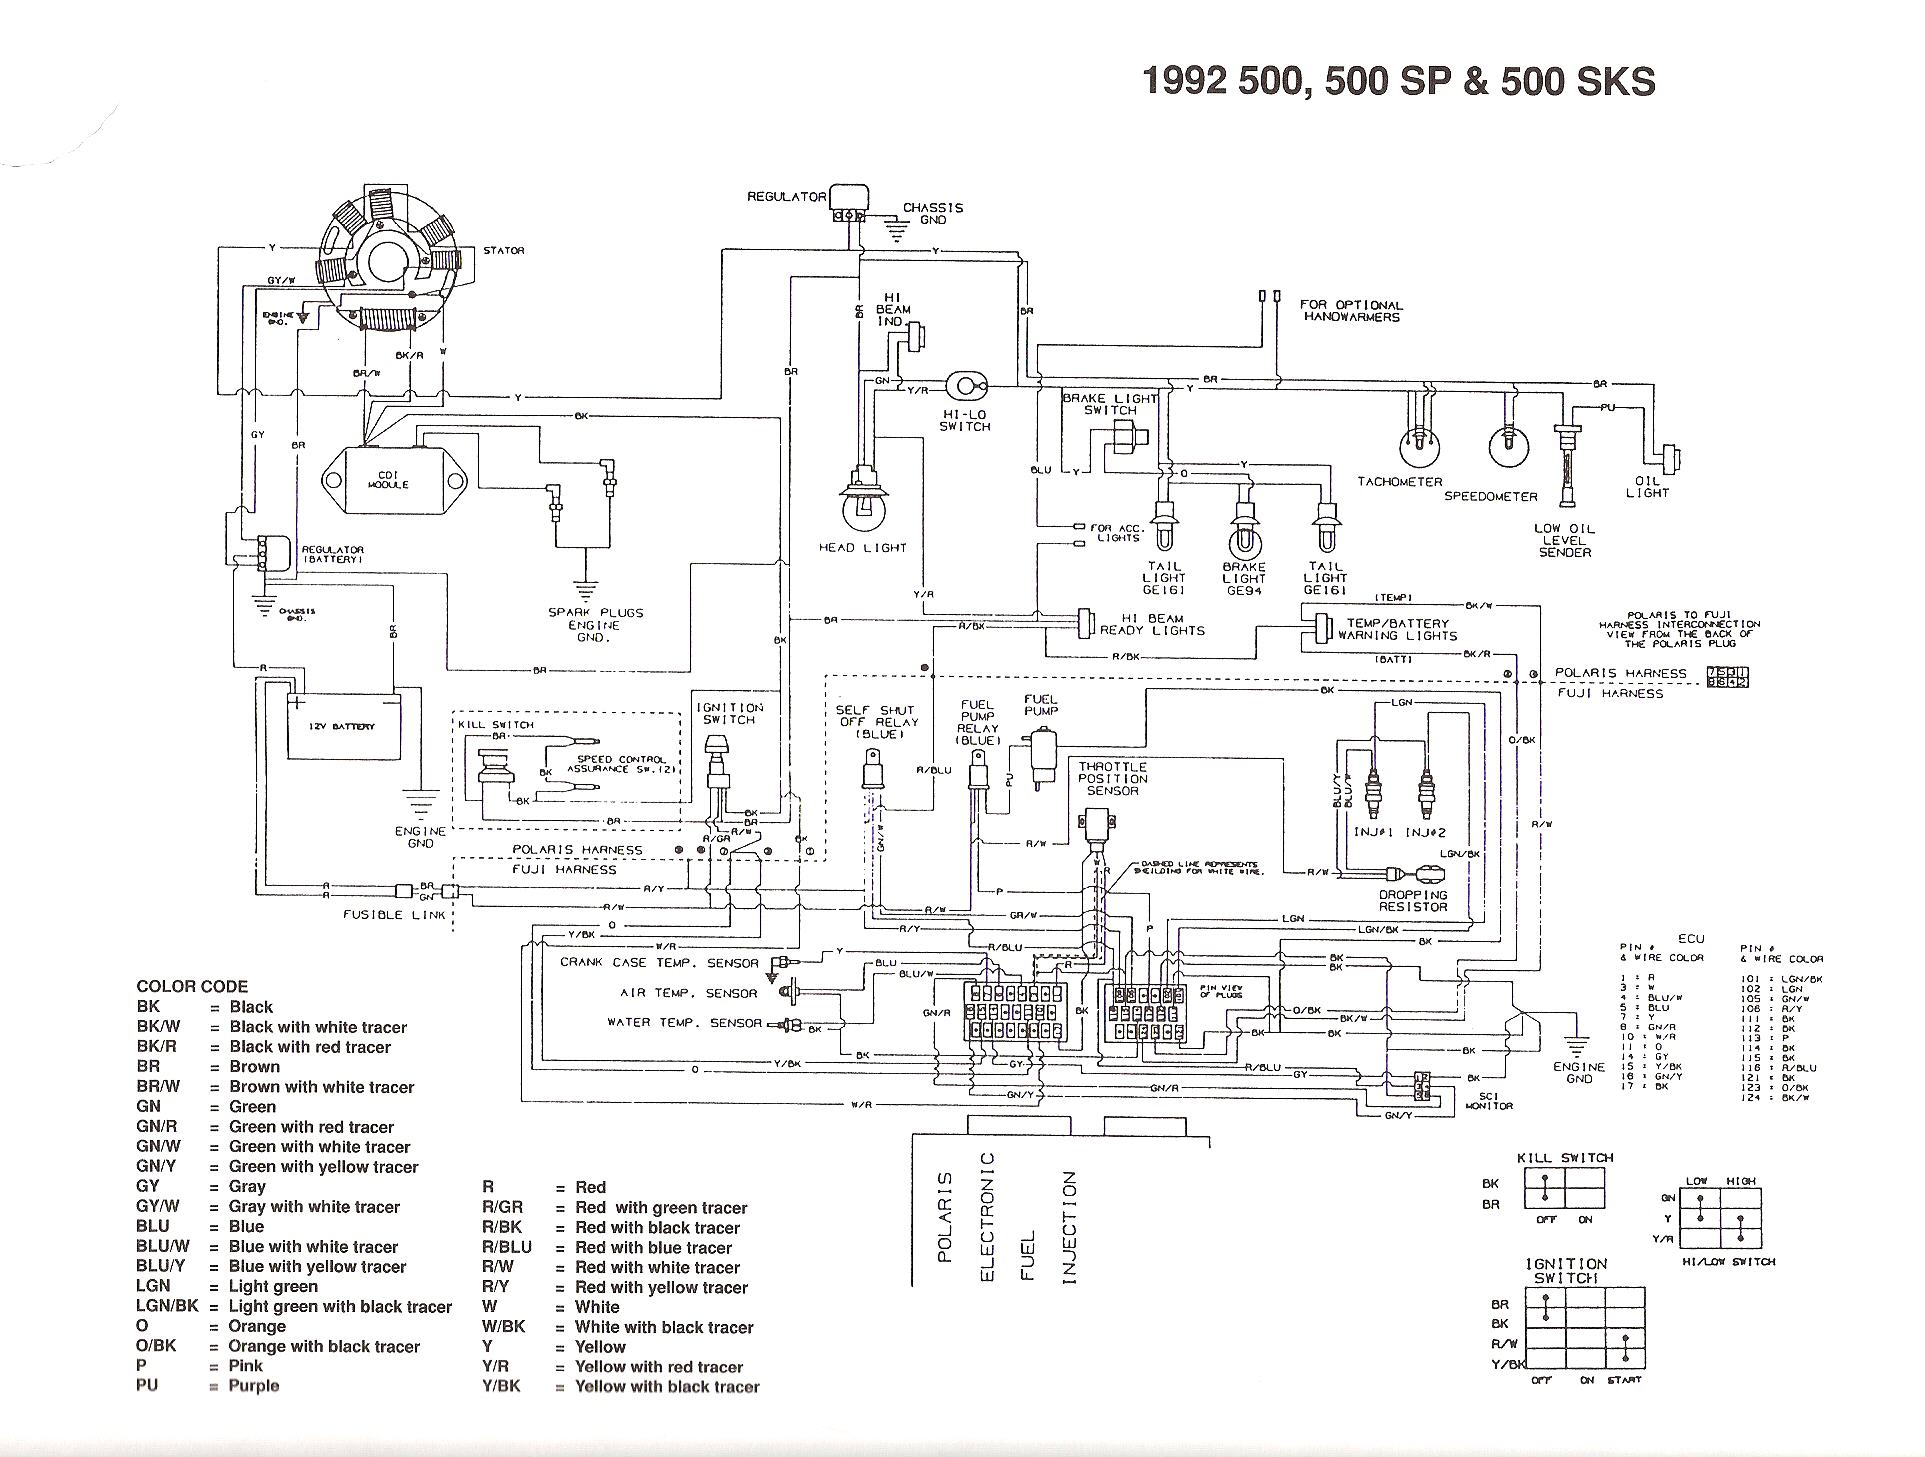 3116 Injector Wiring Diagram Polaris 500 Efi Indy Fuel Delivery Problem